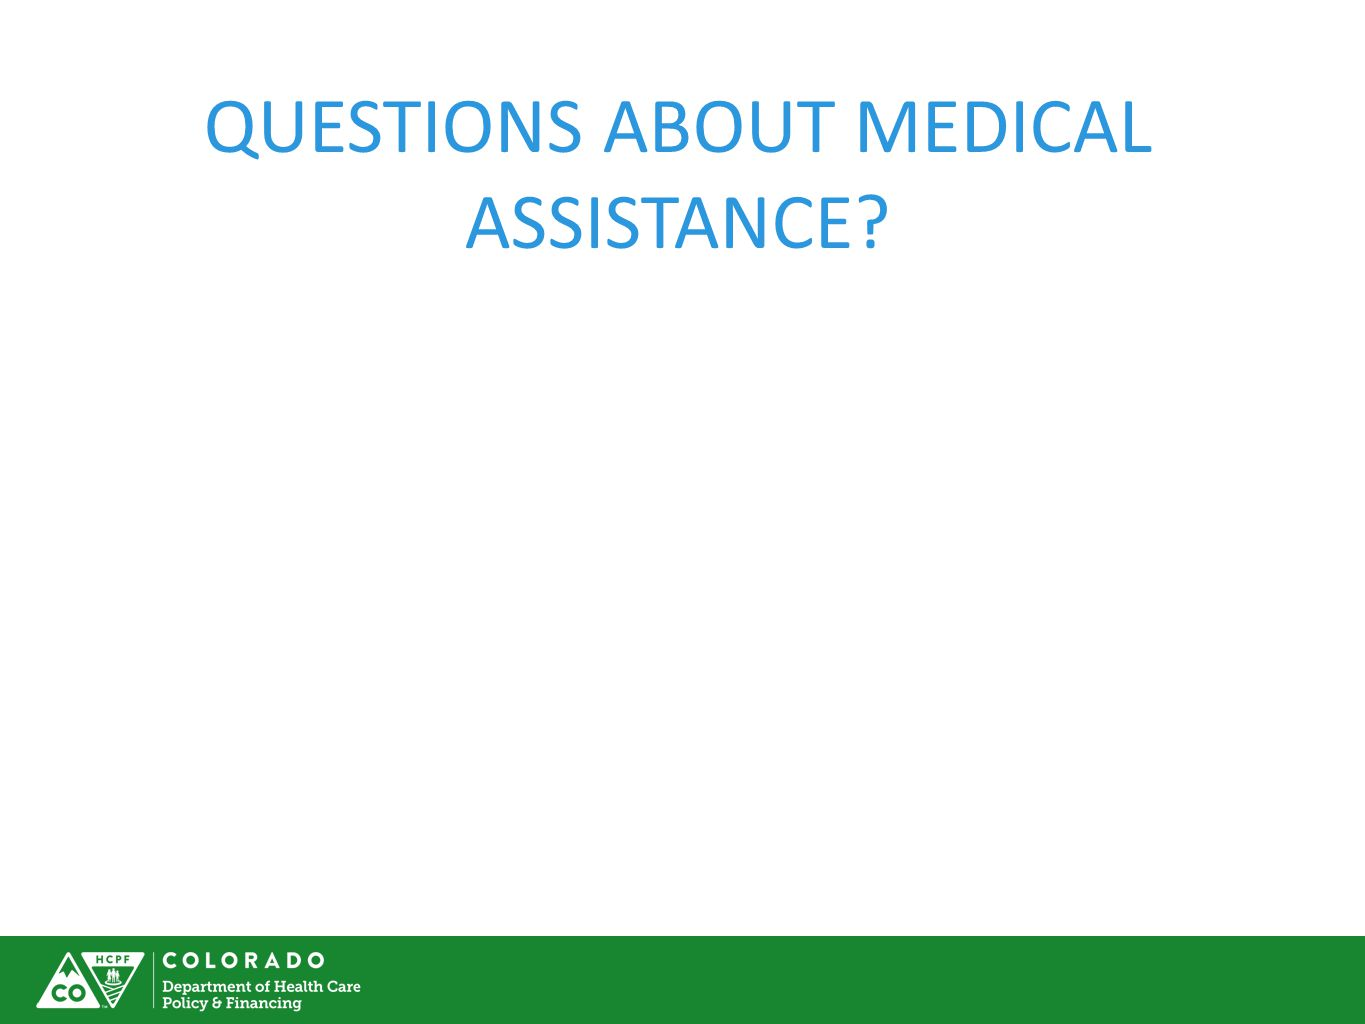 QUESTIONS ABOUT MEDICAL ASSISTANCE